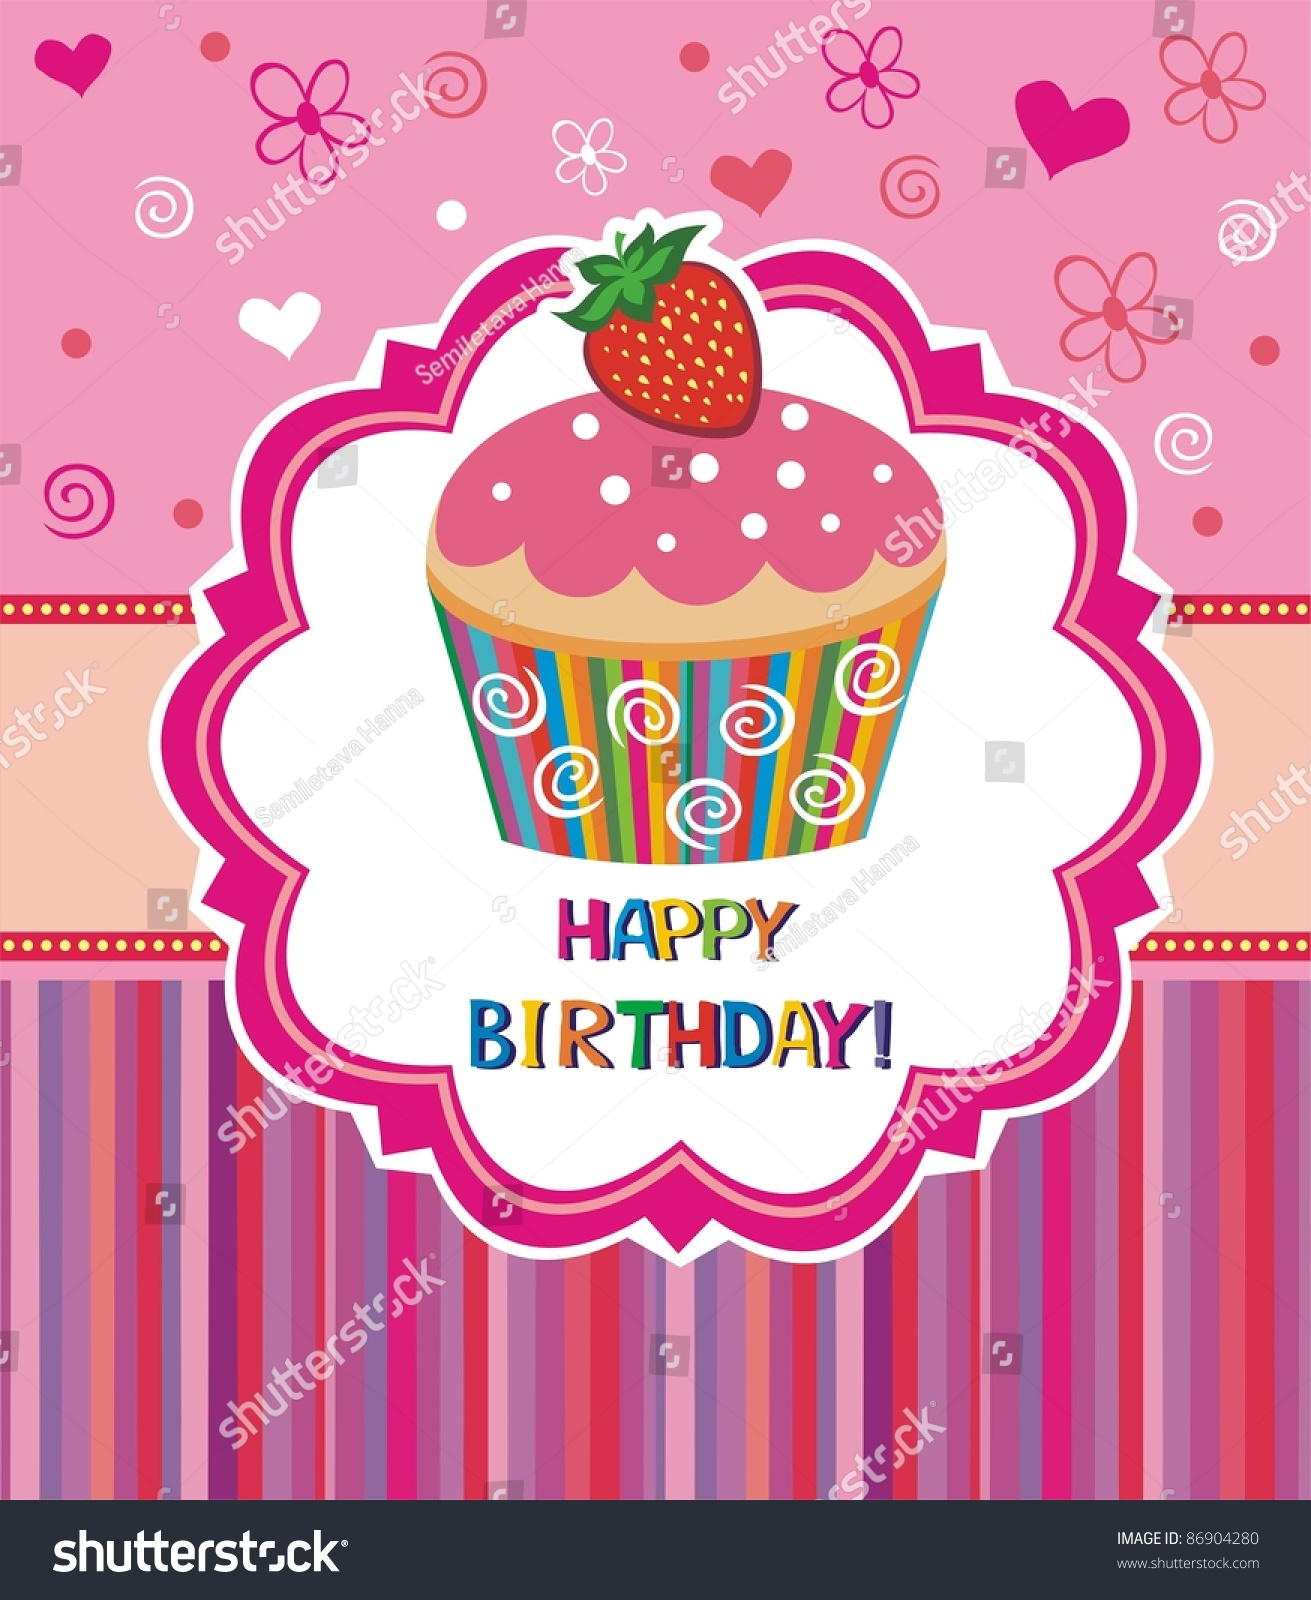 Happy Birthday Card Illustration Cute Cupcake Stock Vector